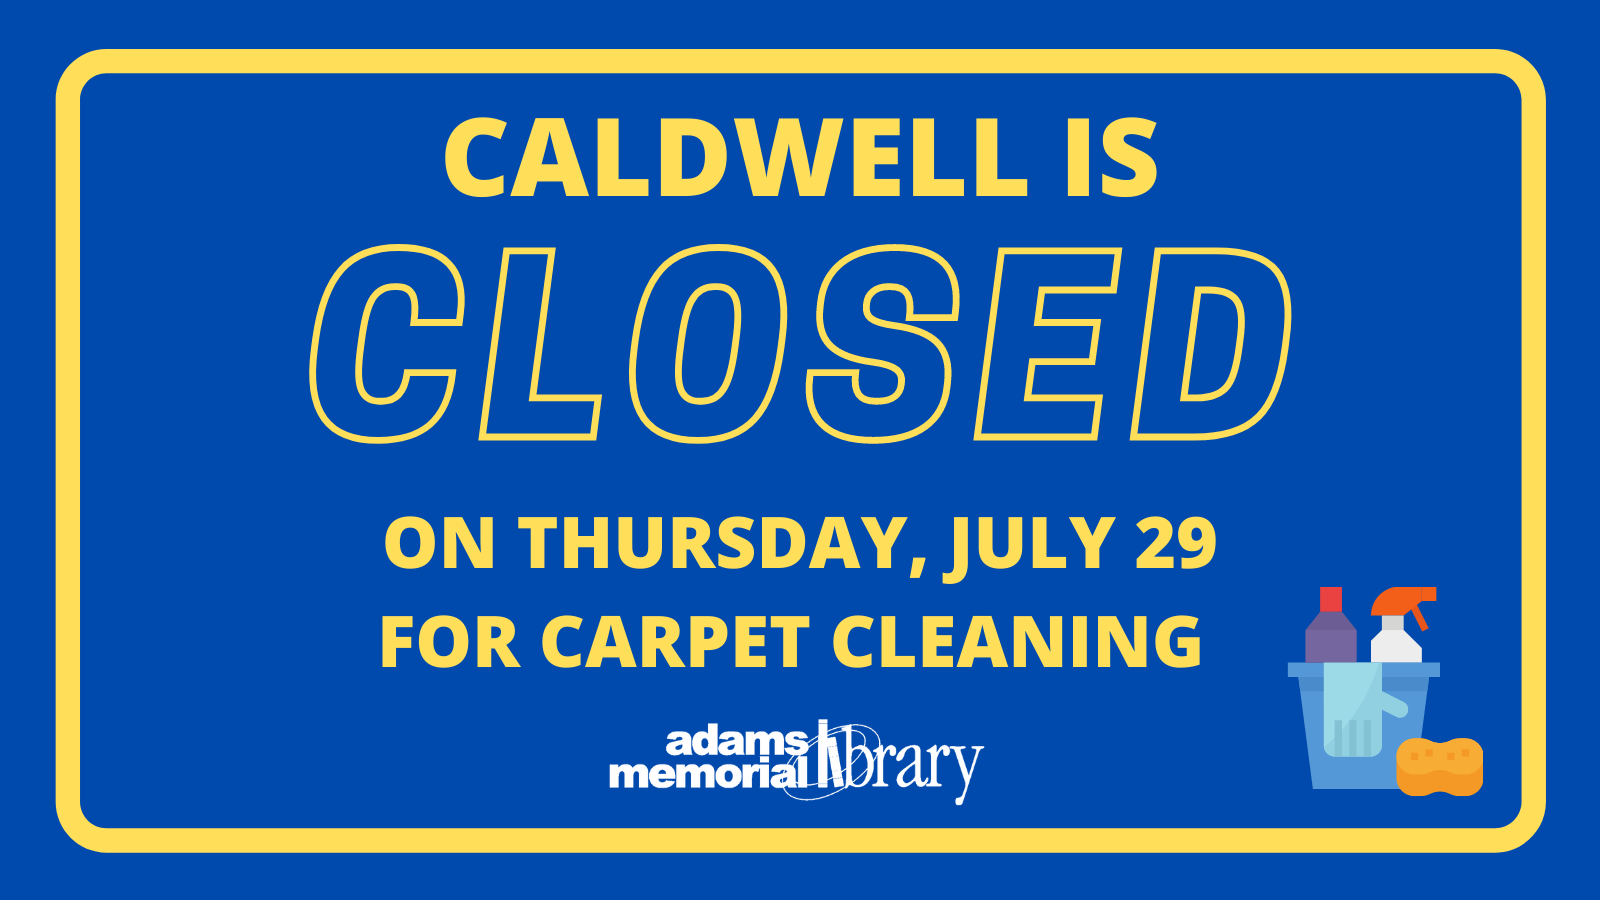 Caldwell Closed due to carpet cleaning!